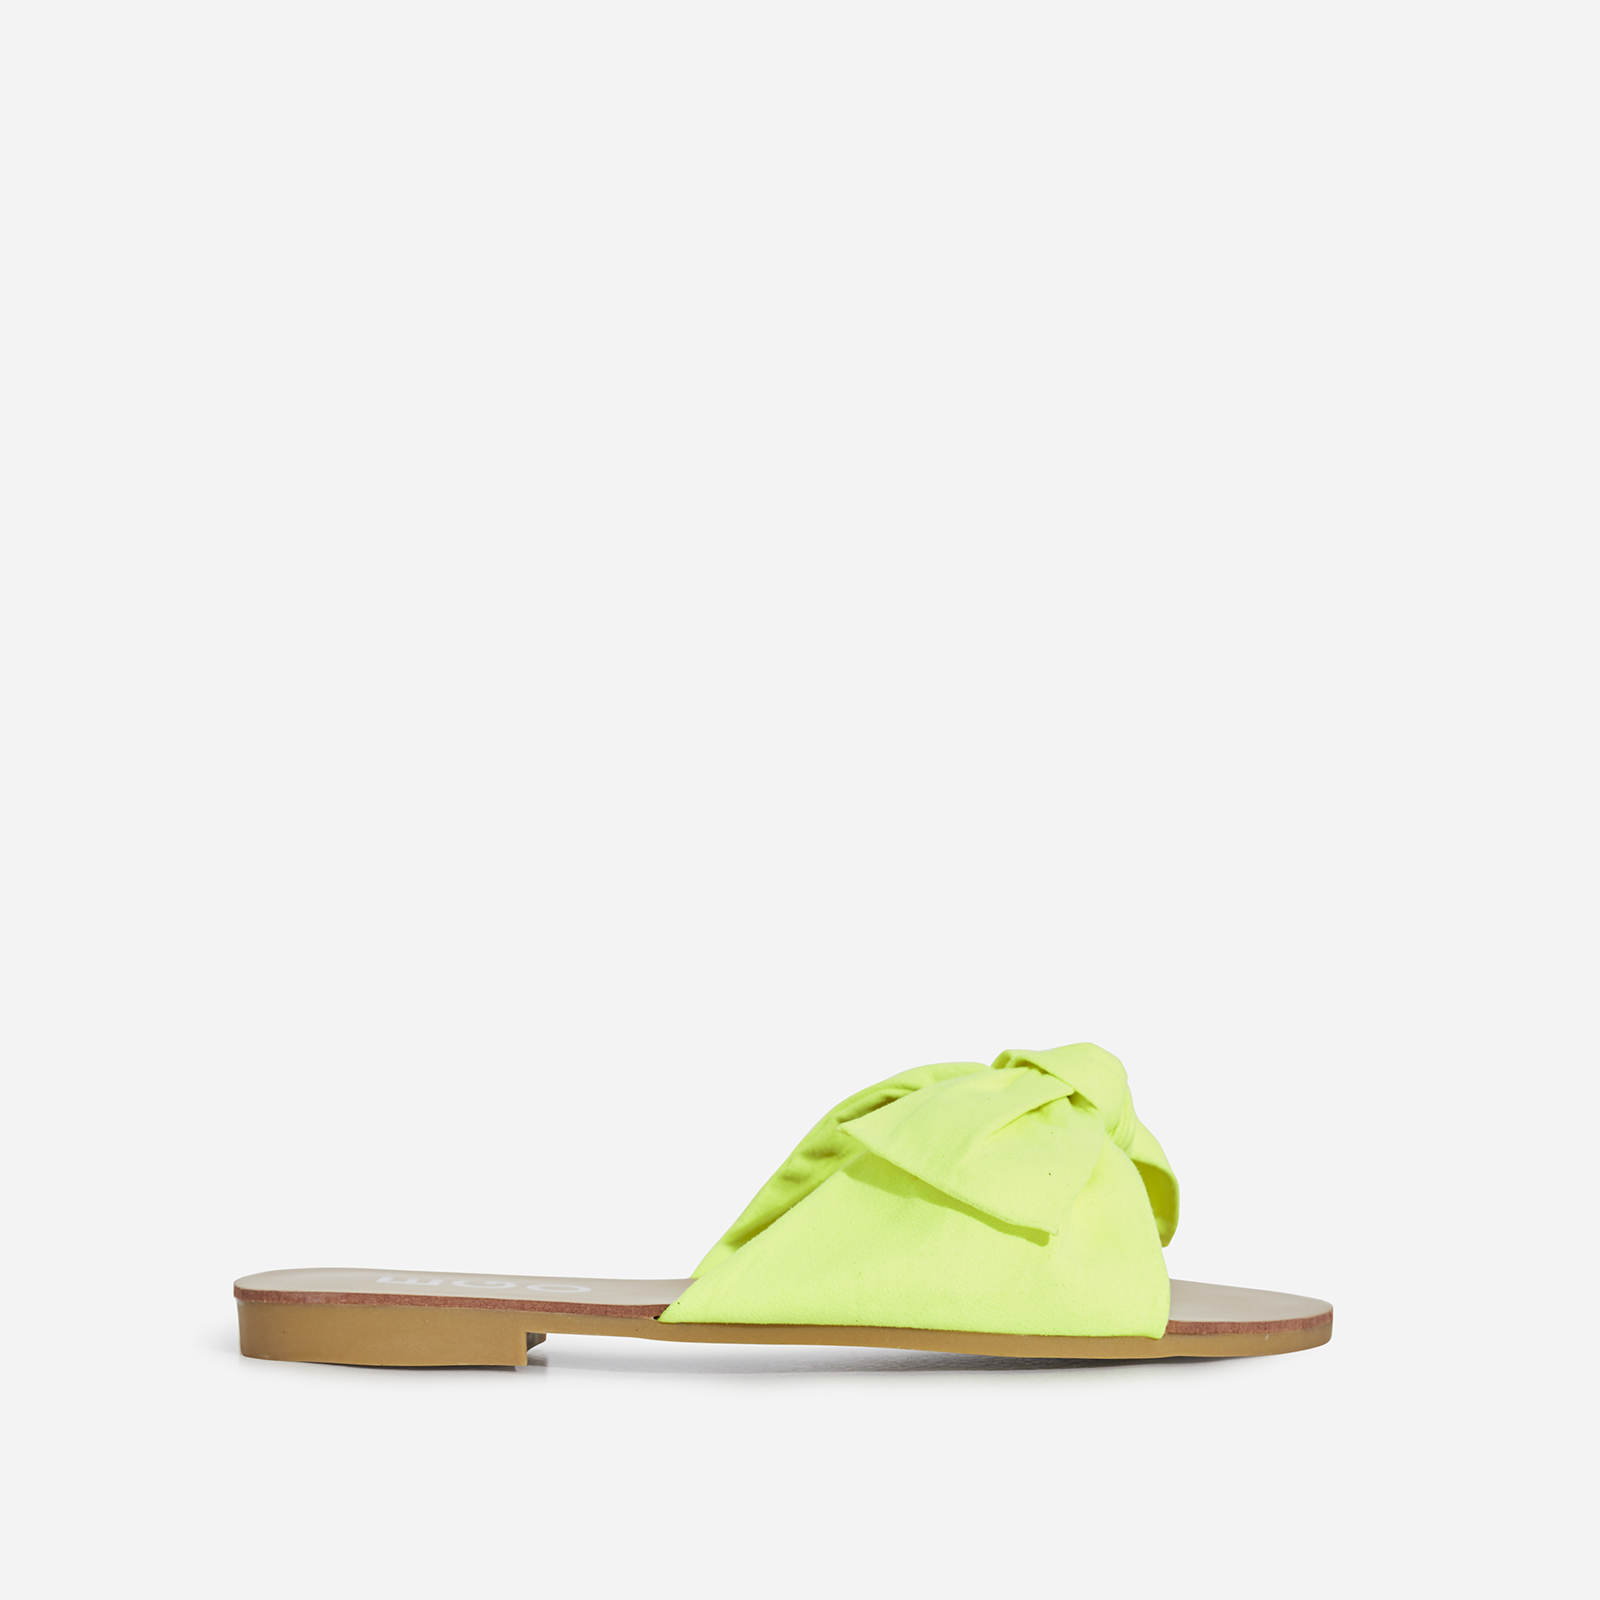 Hebe Bow Detail Slider In Neon Yellow Faux Suede